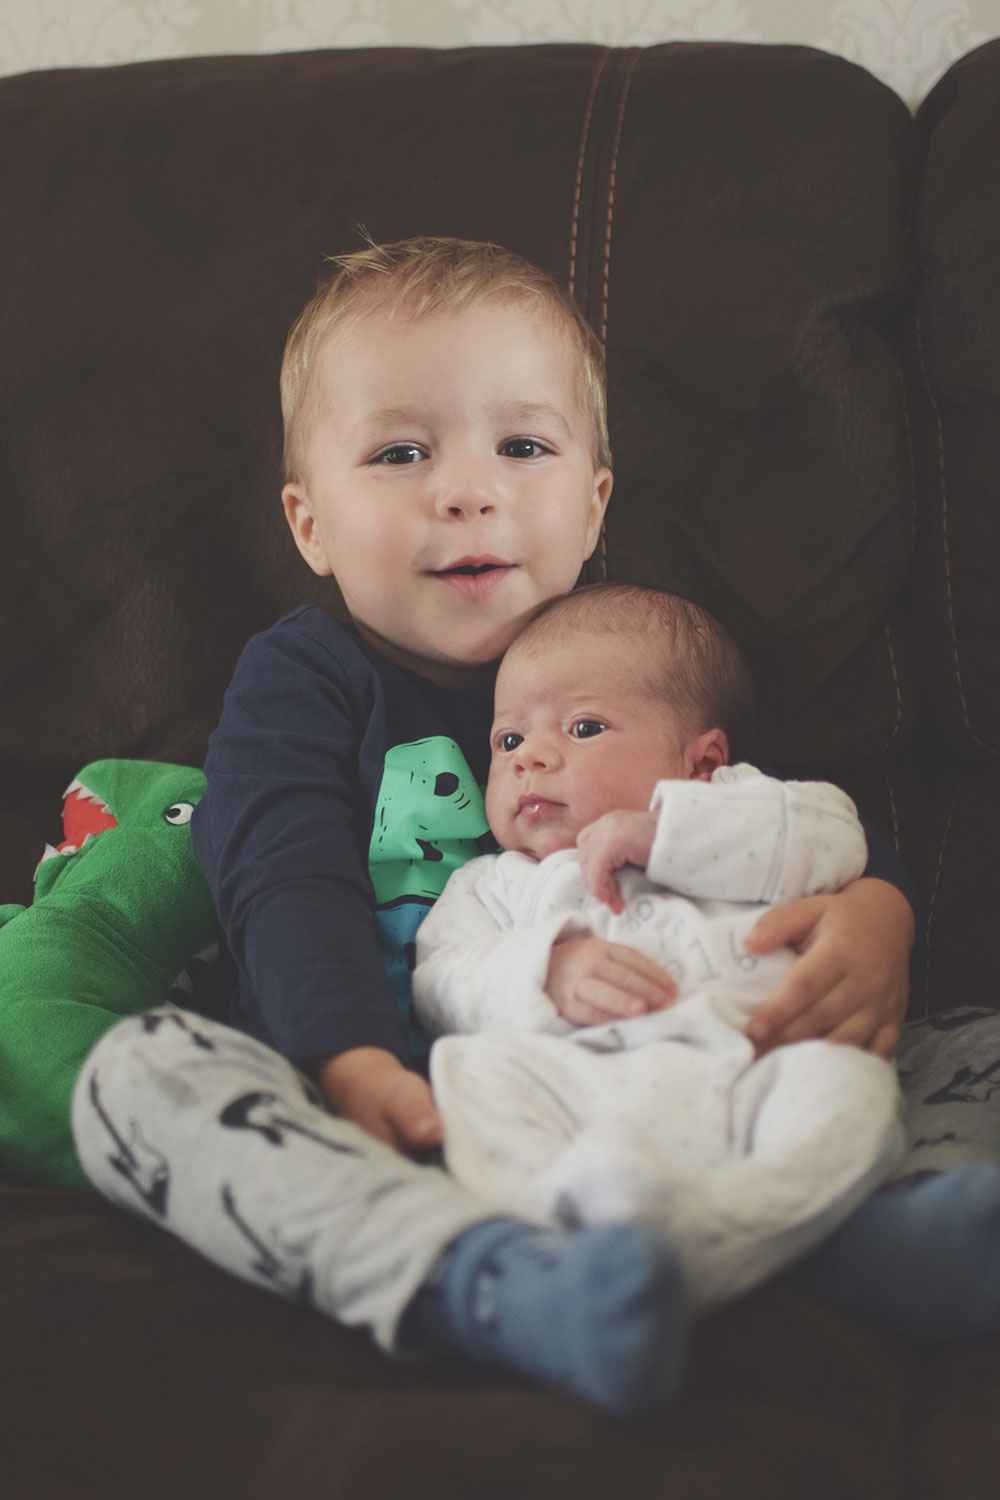 Meeting Blue — The Ordinary Moments #12; 2.5 year old toddler with his newborn baby brother